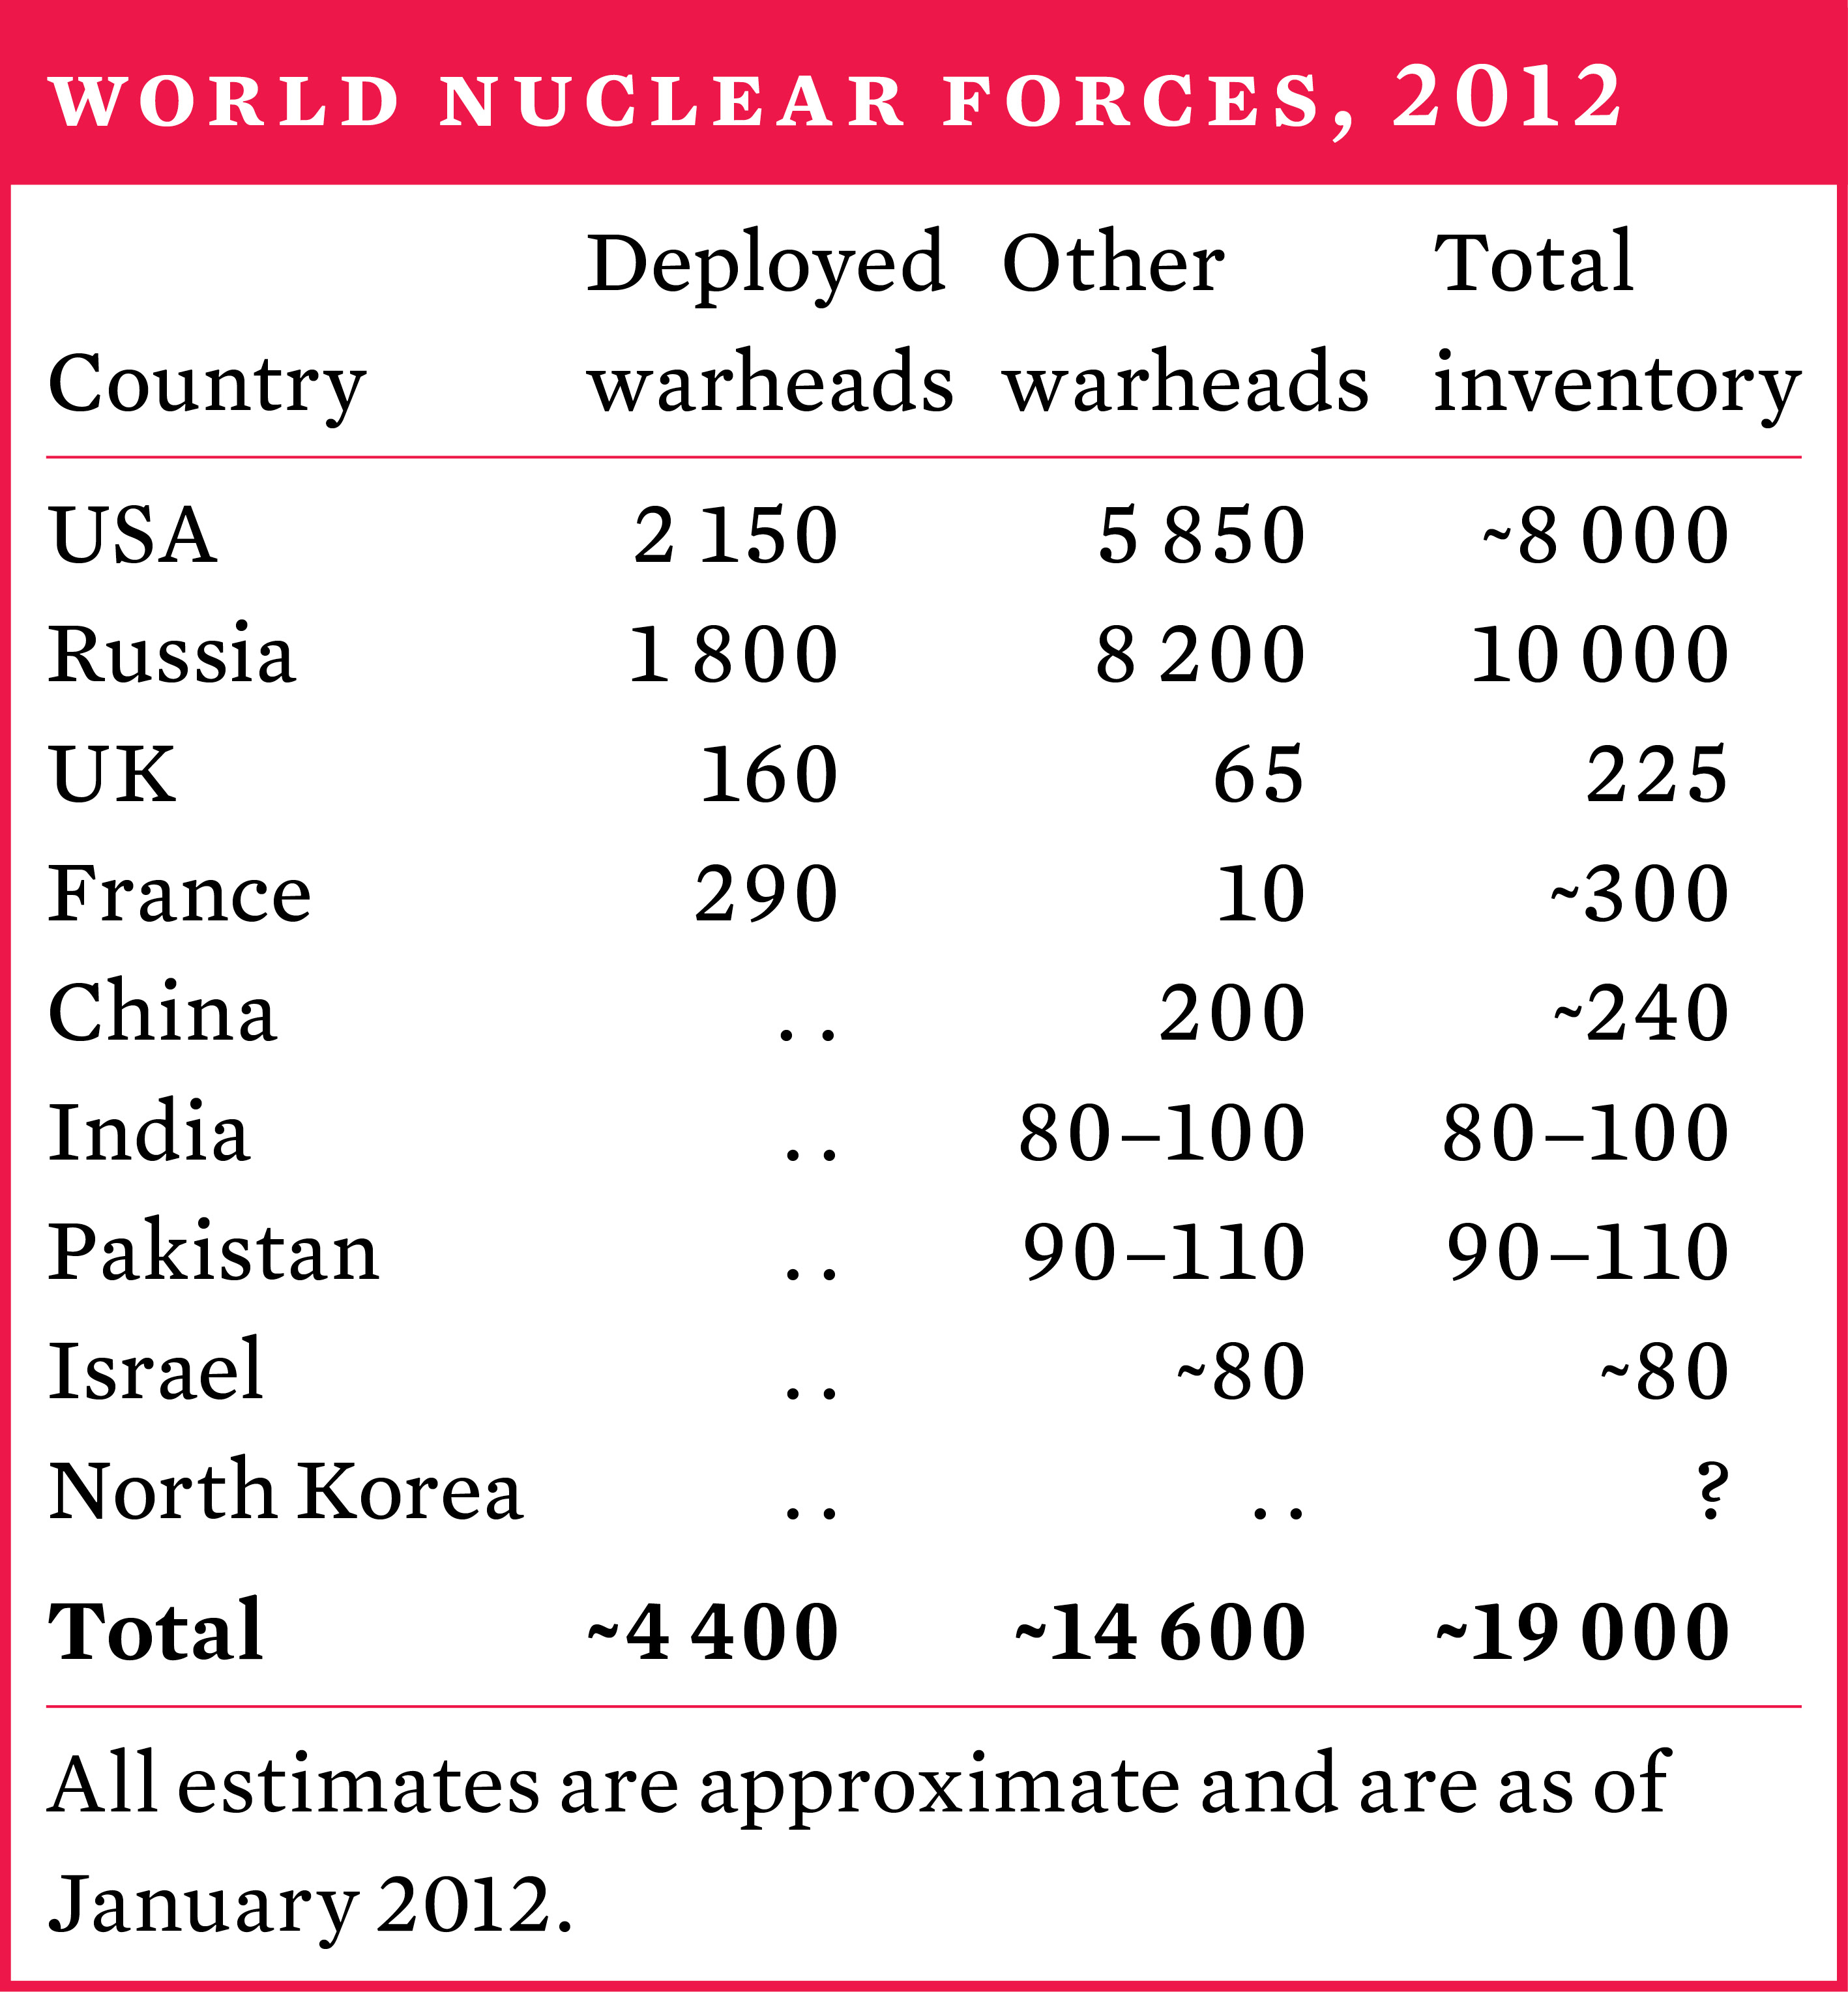 World nuclear forces, 2012